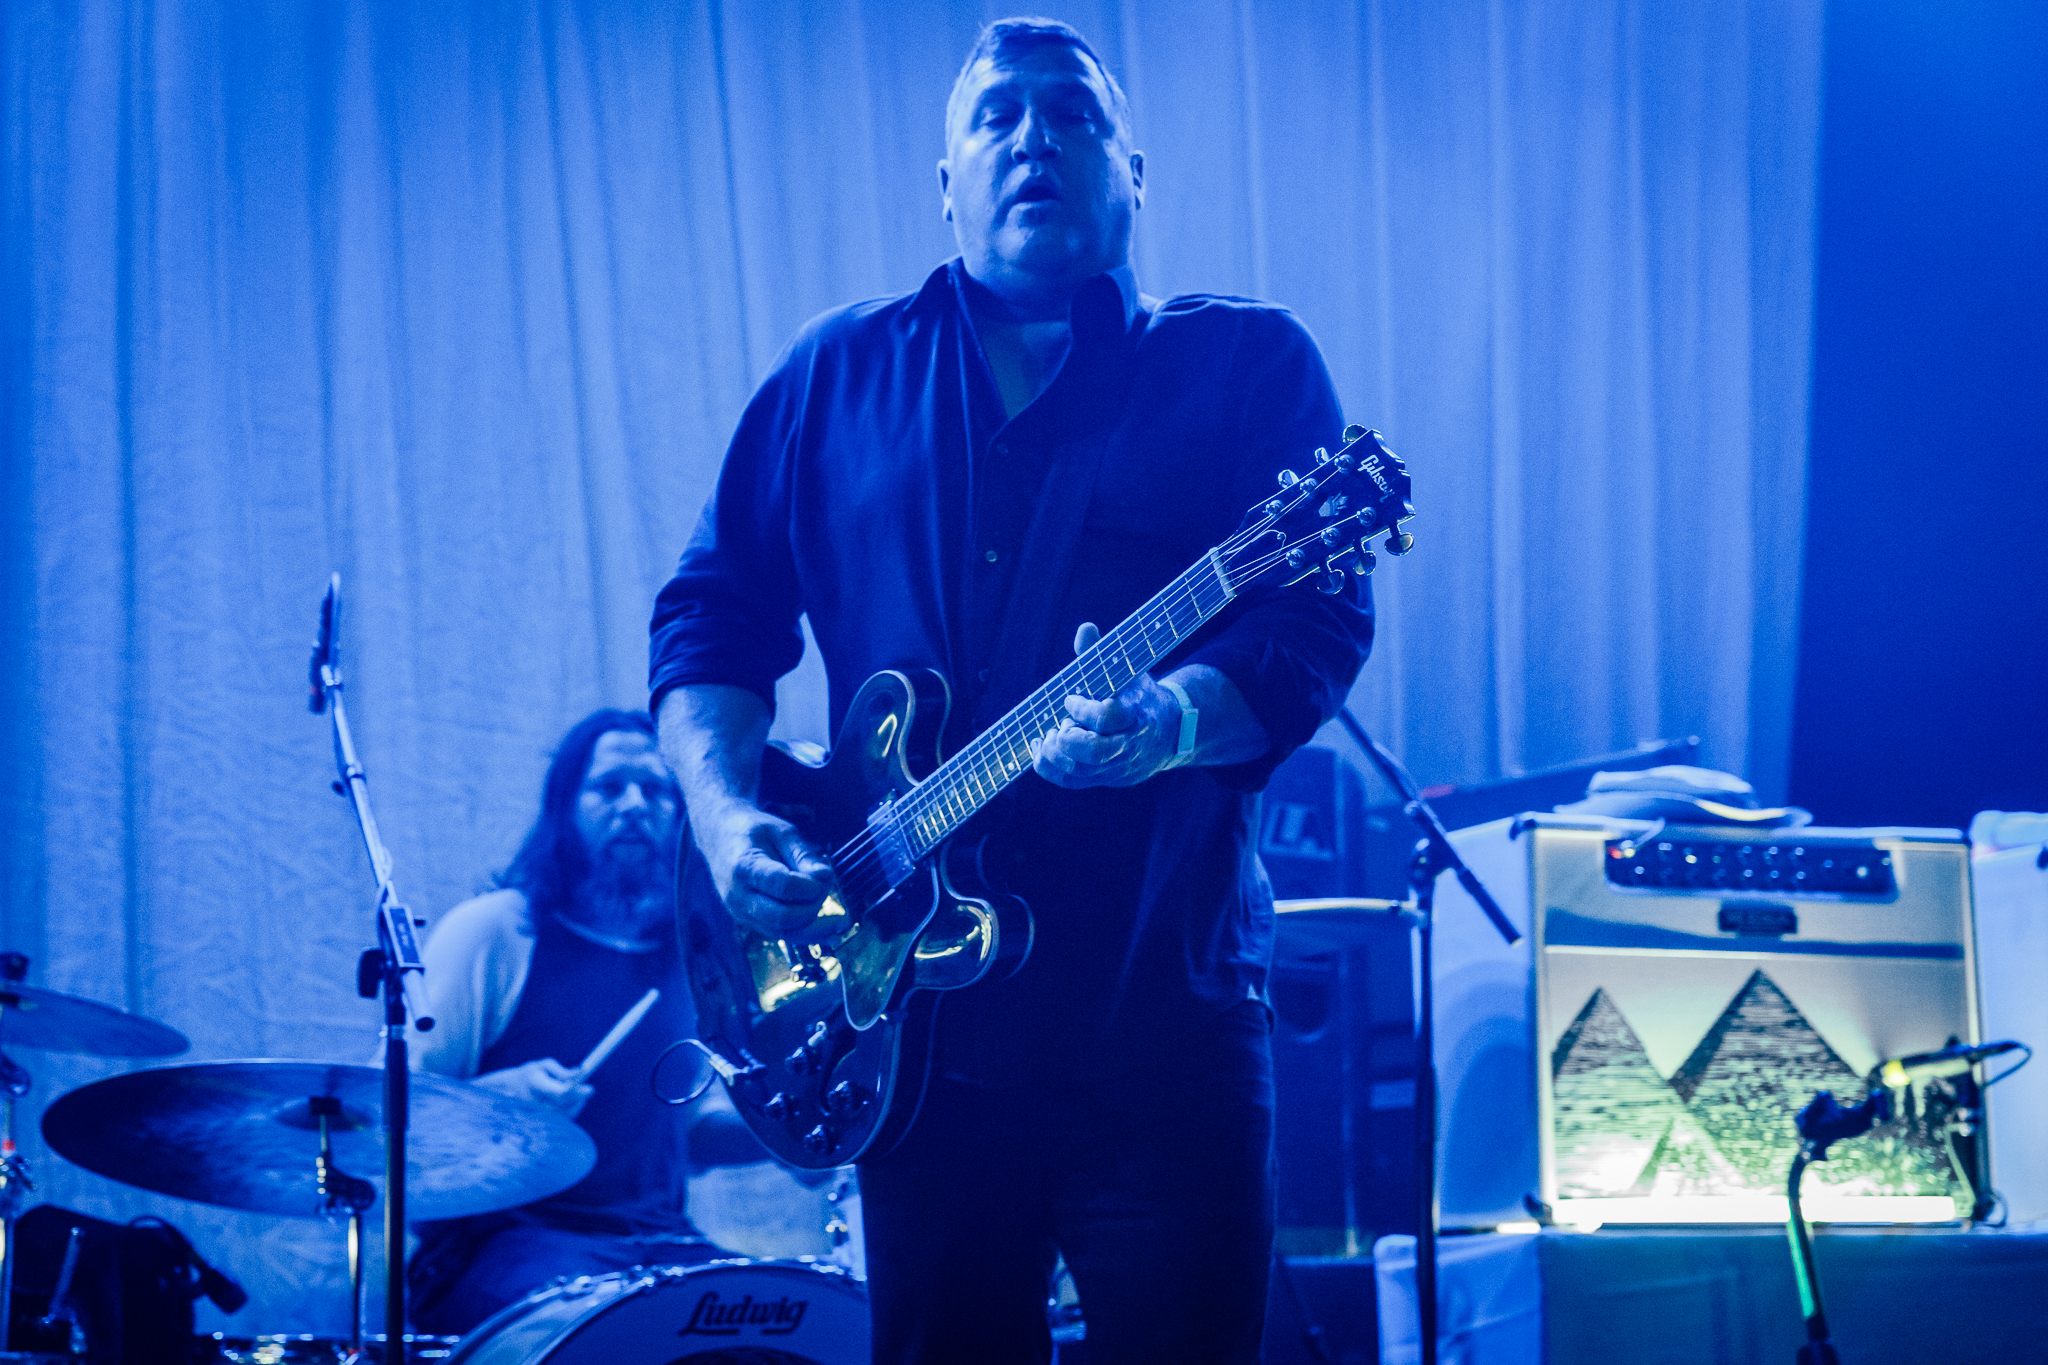 The Afghan Whigs performing at Hopscotch Music Festival 2017 in Raleigh, NC - 9/8/2017 (photo by Matt Condon / @arcane93)